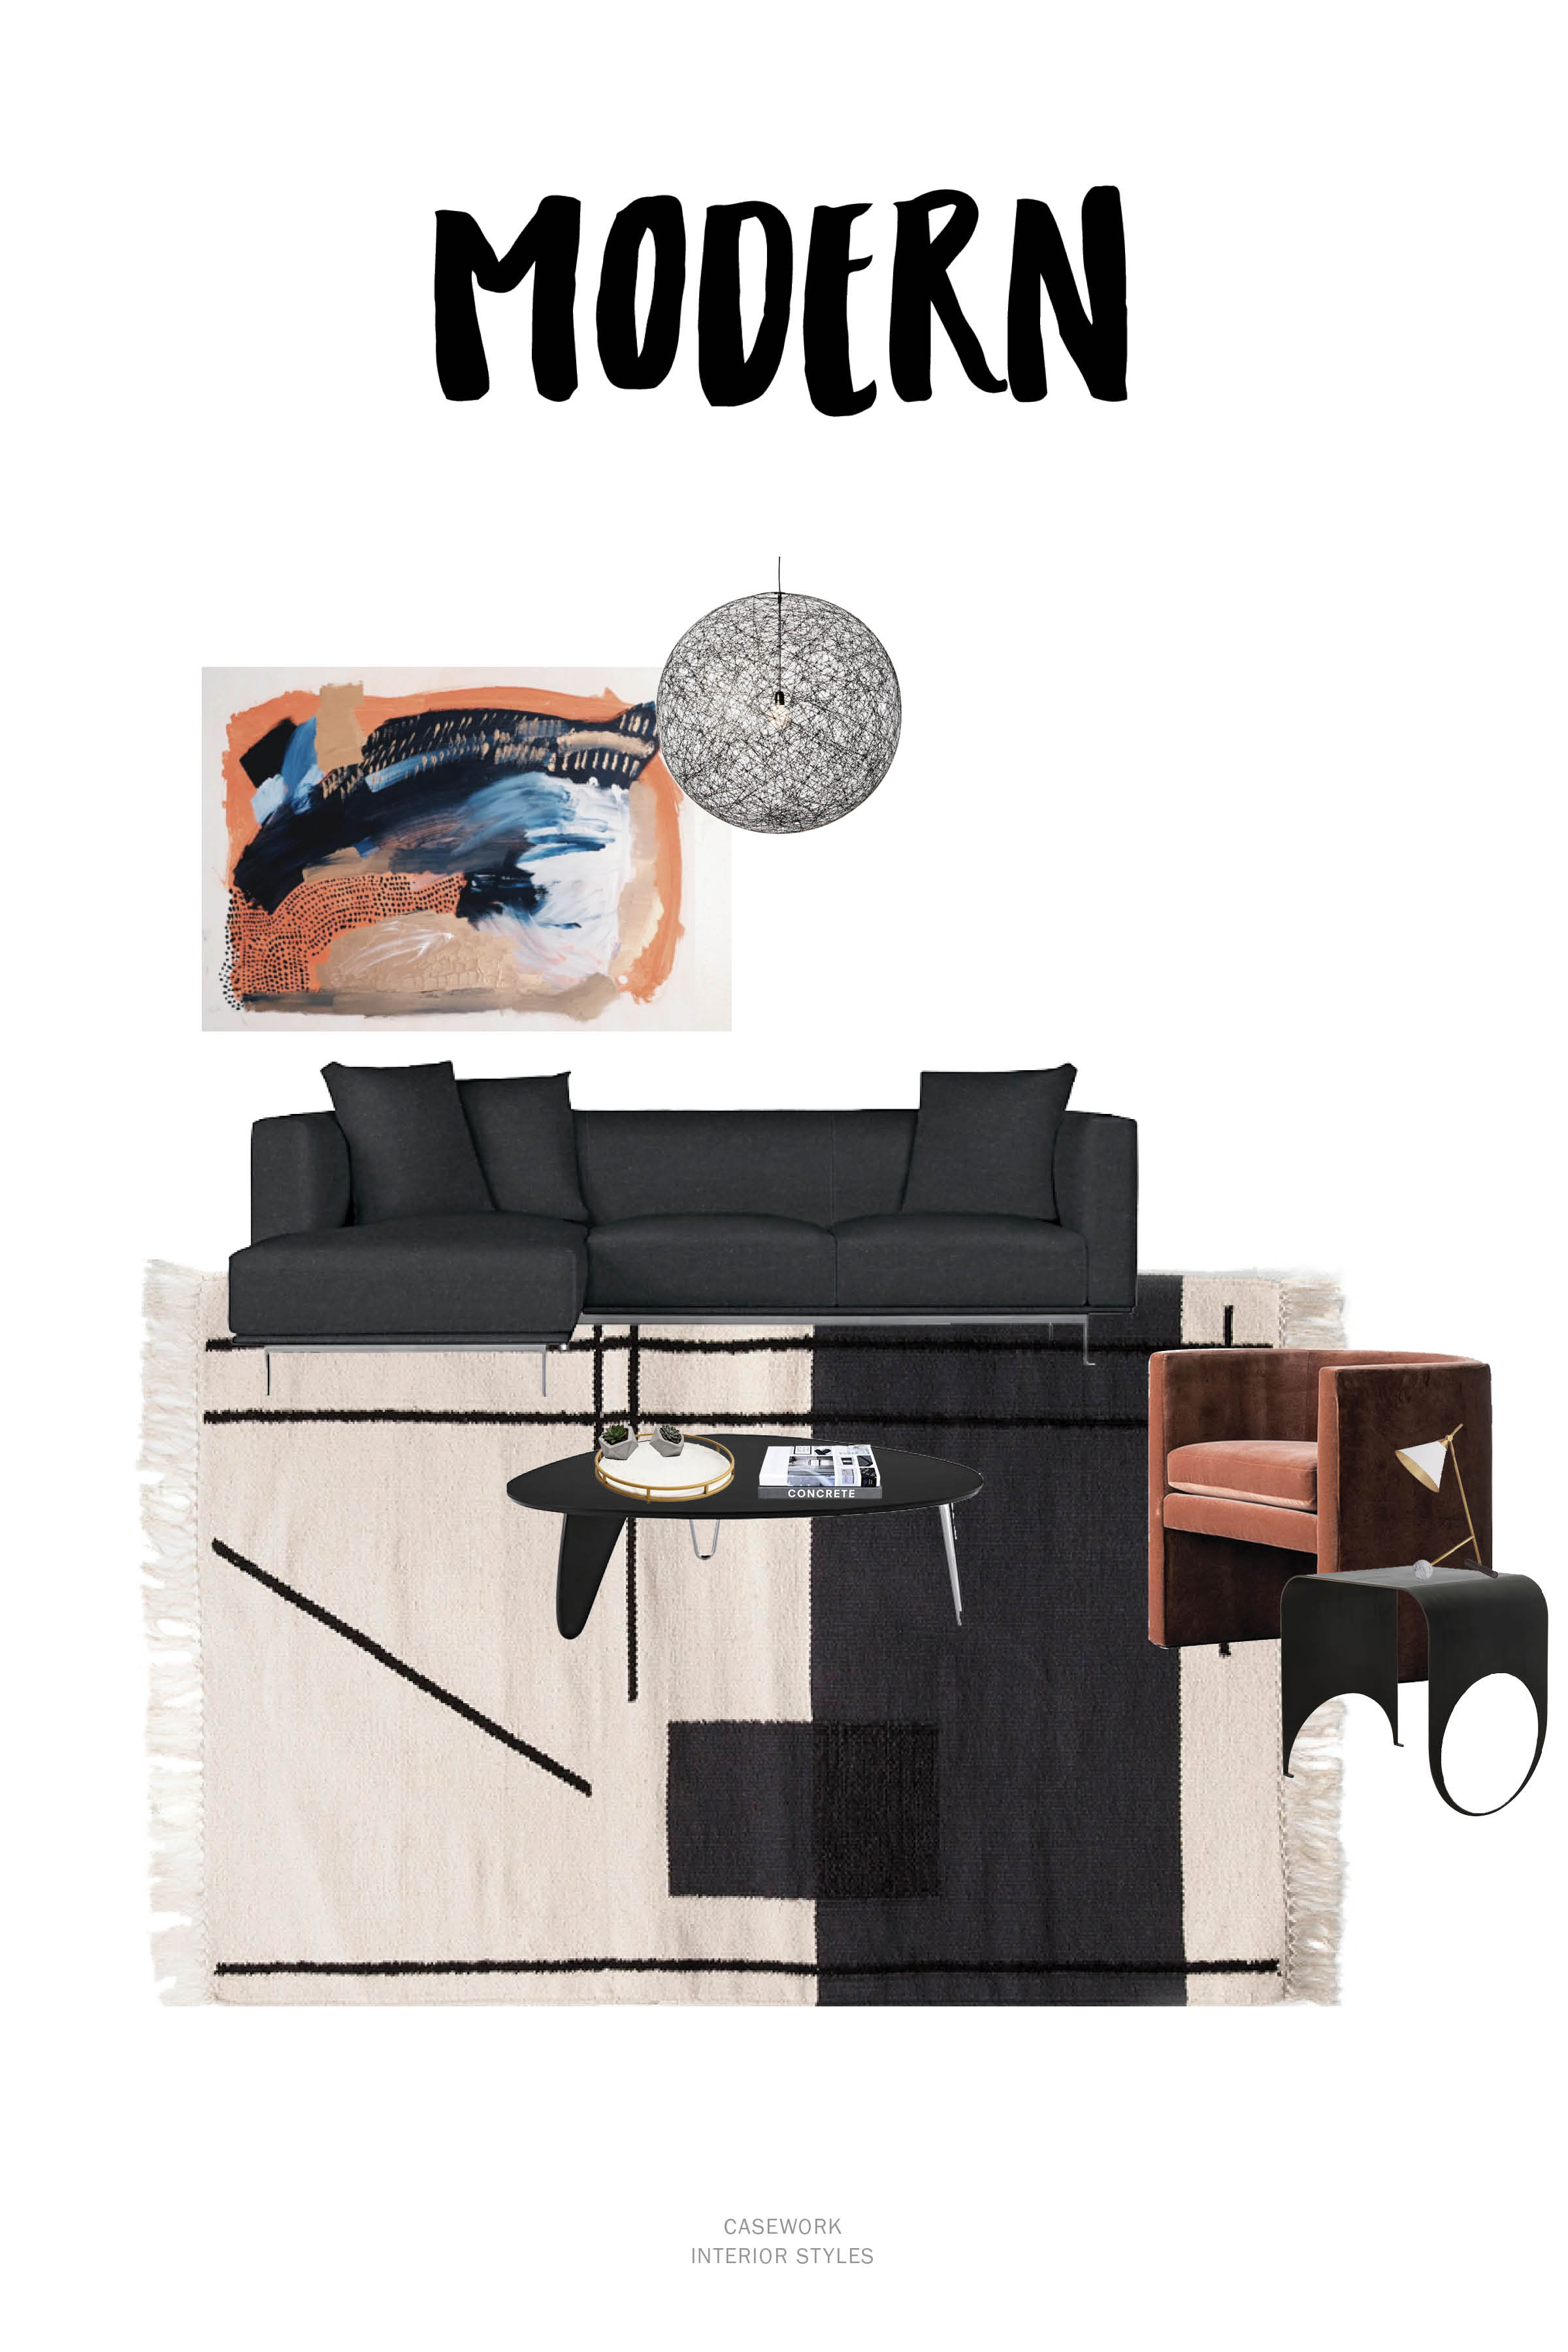 Modern Interior Style Resources:  Art  |  Pendant  |  Sofa  |  Coffee Table  |  Side Chair  |  Table Lamp  |  Side Table  |  Rug - similar